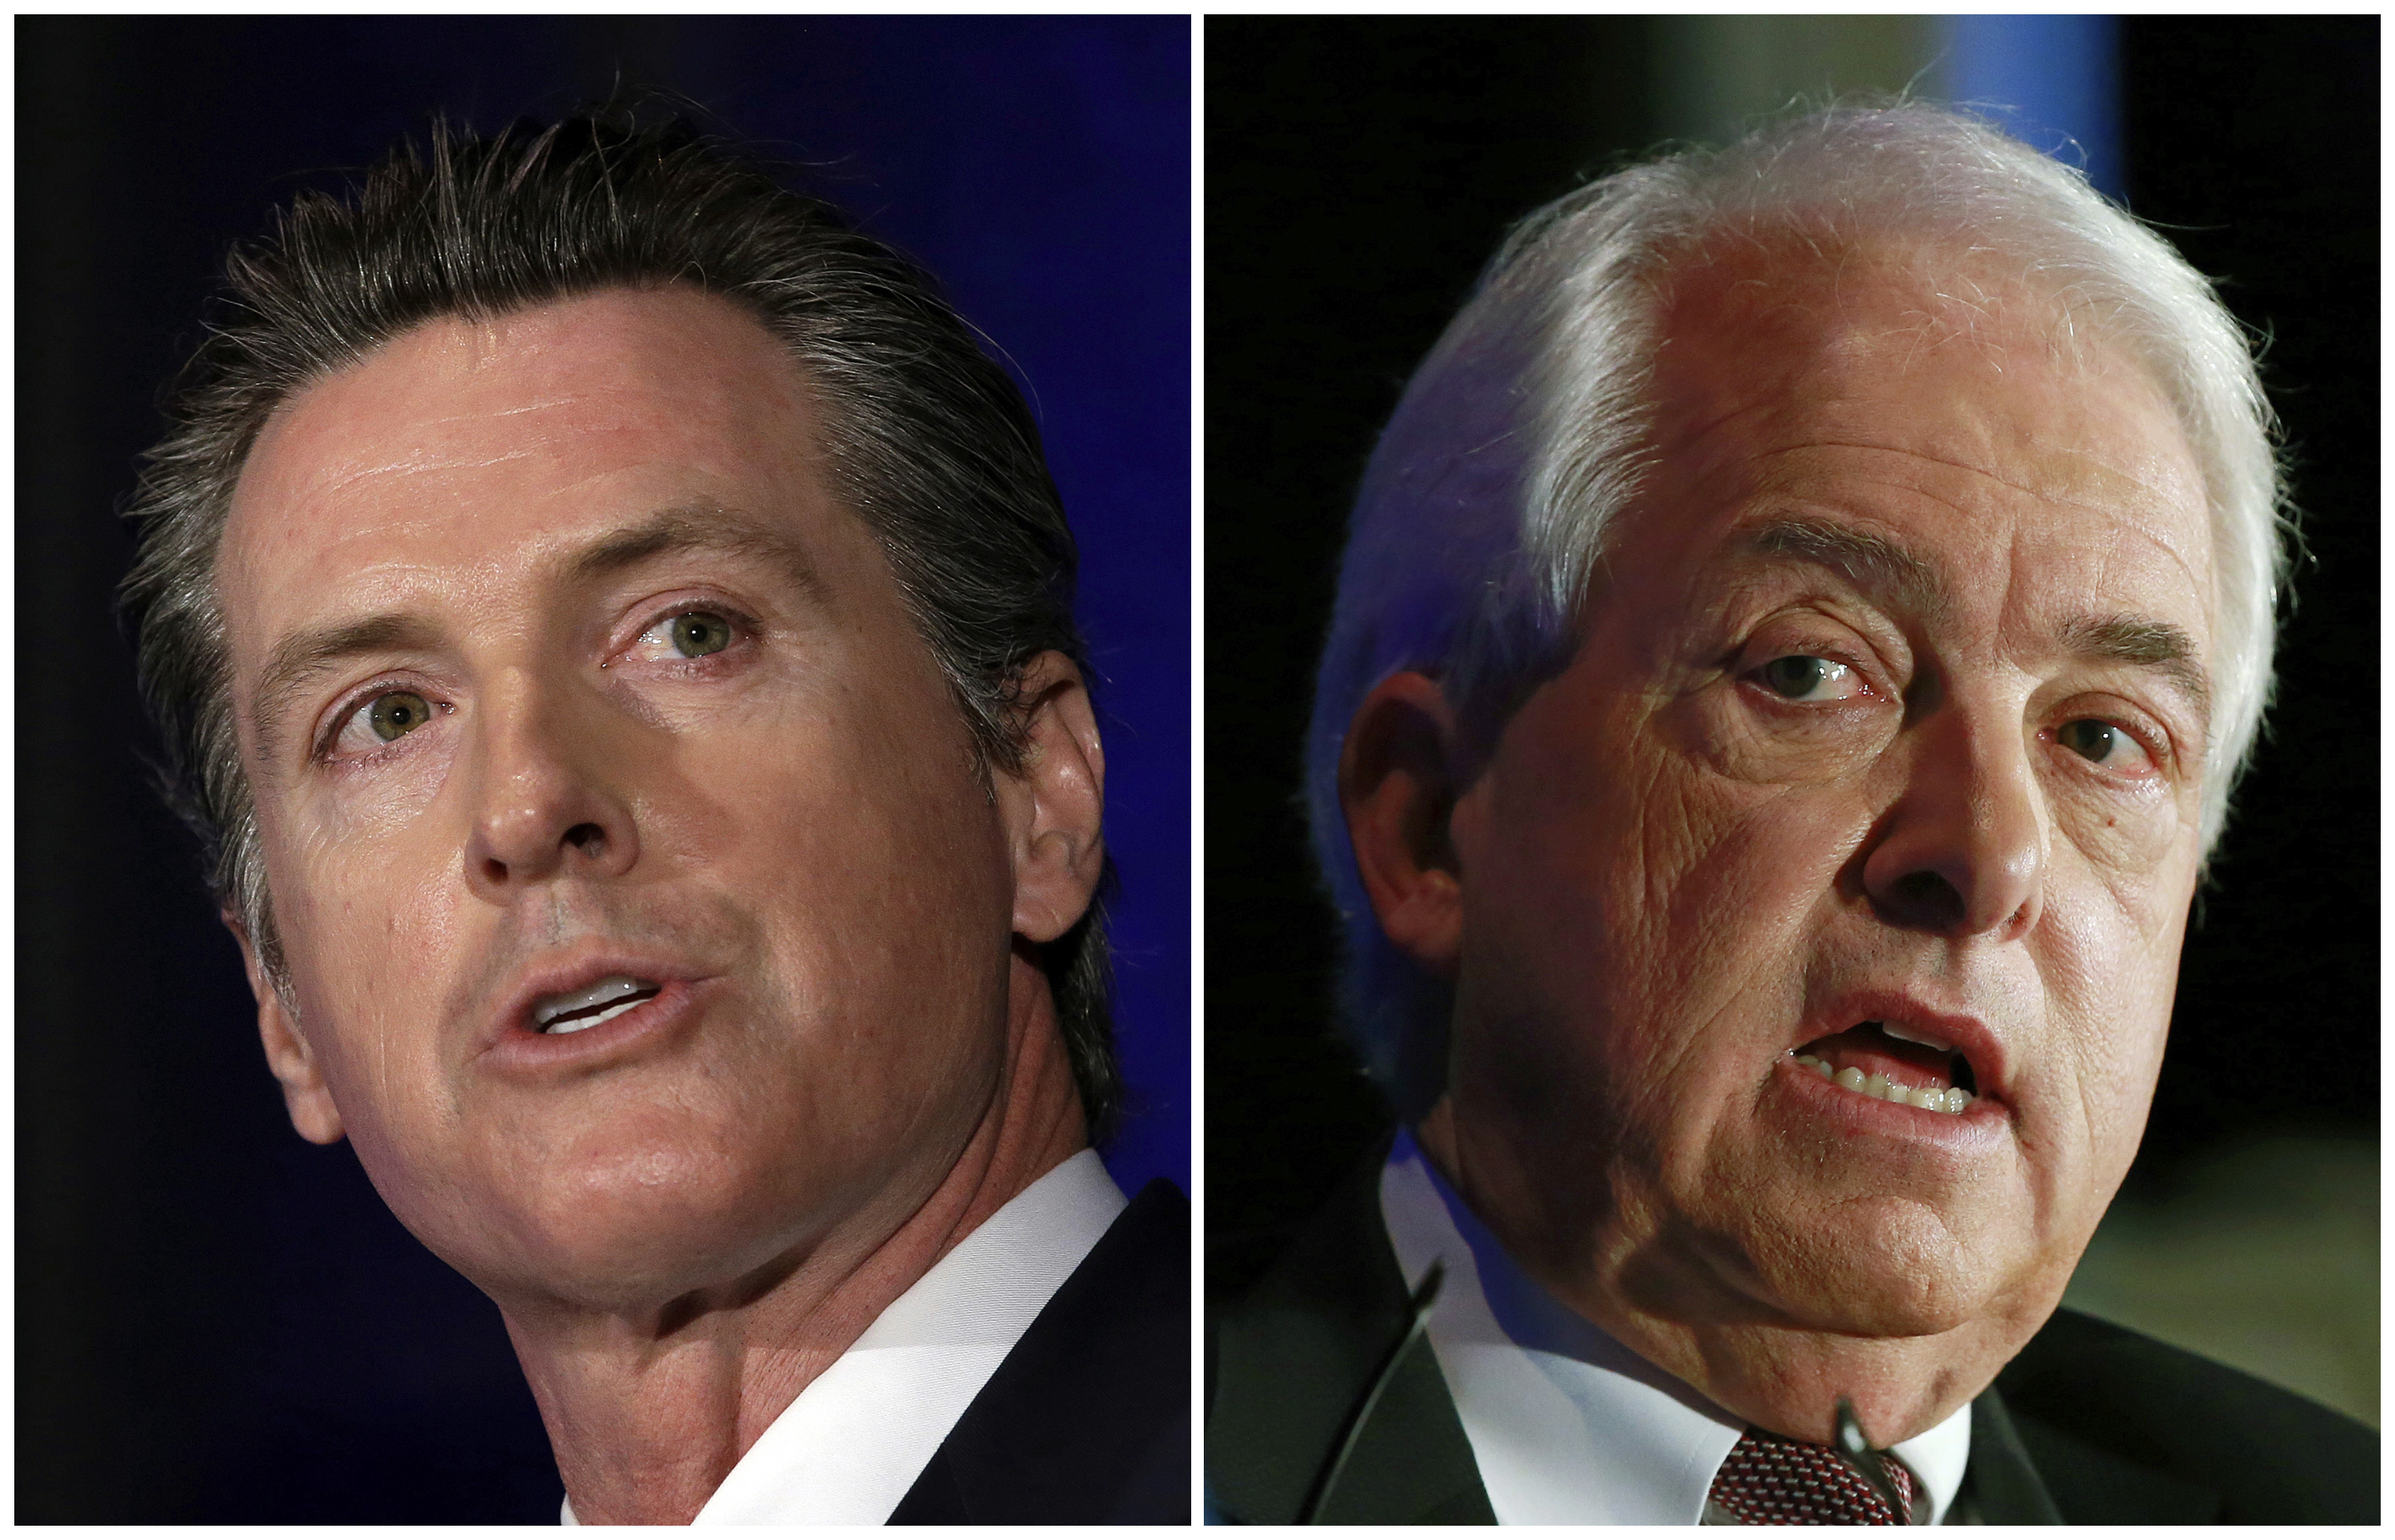 This combination of March 8, 2018 photos shows Lt. Gov. Gavin Newsom, left, and John Cox in Sacramento, Calif. California's race for governor pits Newsom, a Democrat and former San Francisco mayor, against Republican businessman John Cox. (AP Photos/Rich Pedroncelli, File)